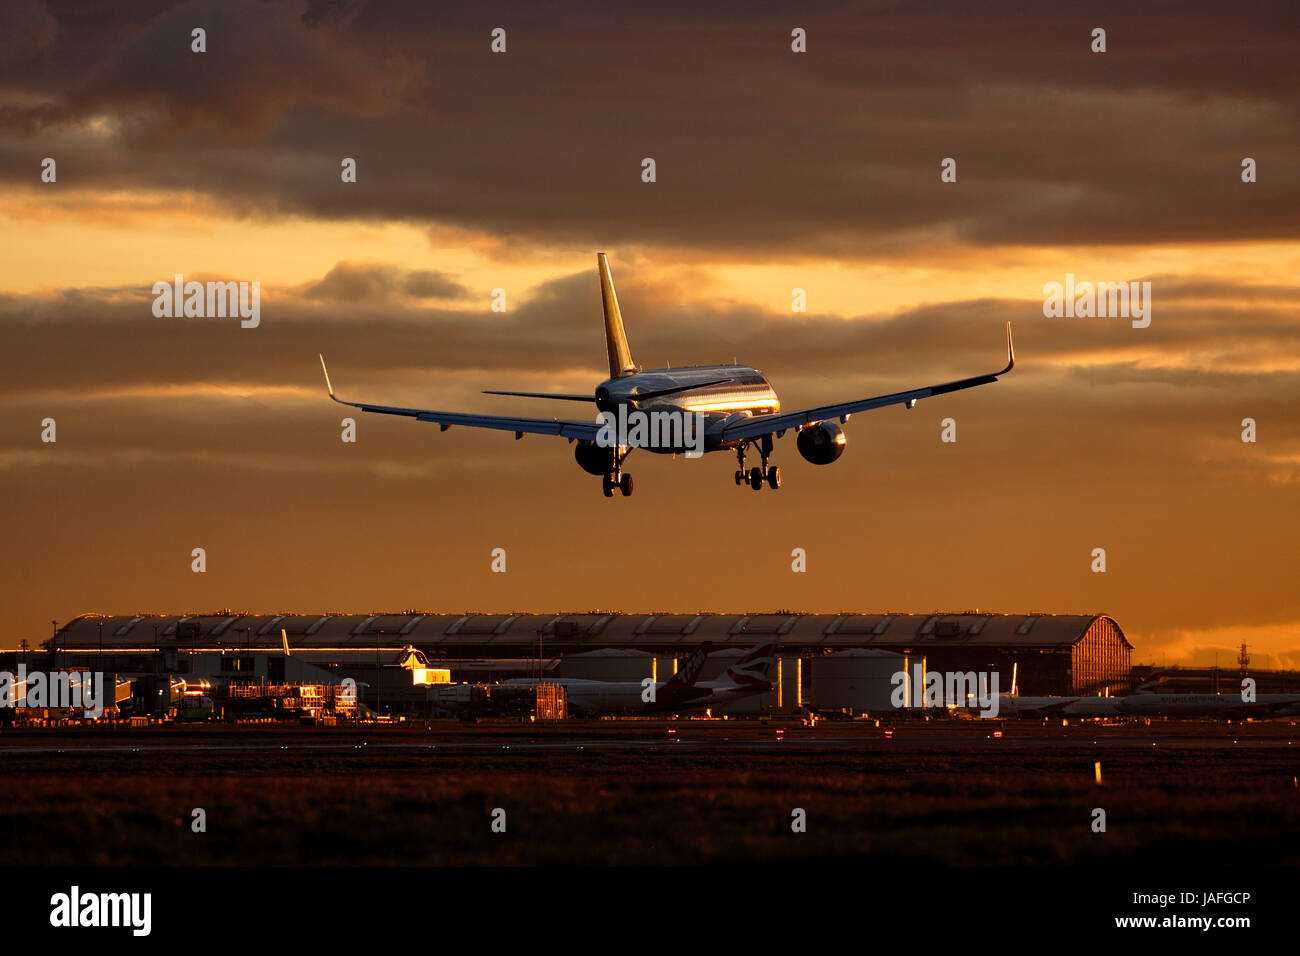 D-AIUS Lufthansa Airbus A320-200 cn-7024 arriving at Heathrow on 27R at sunset - Stock Image